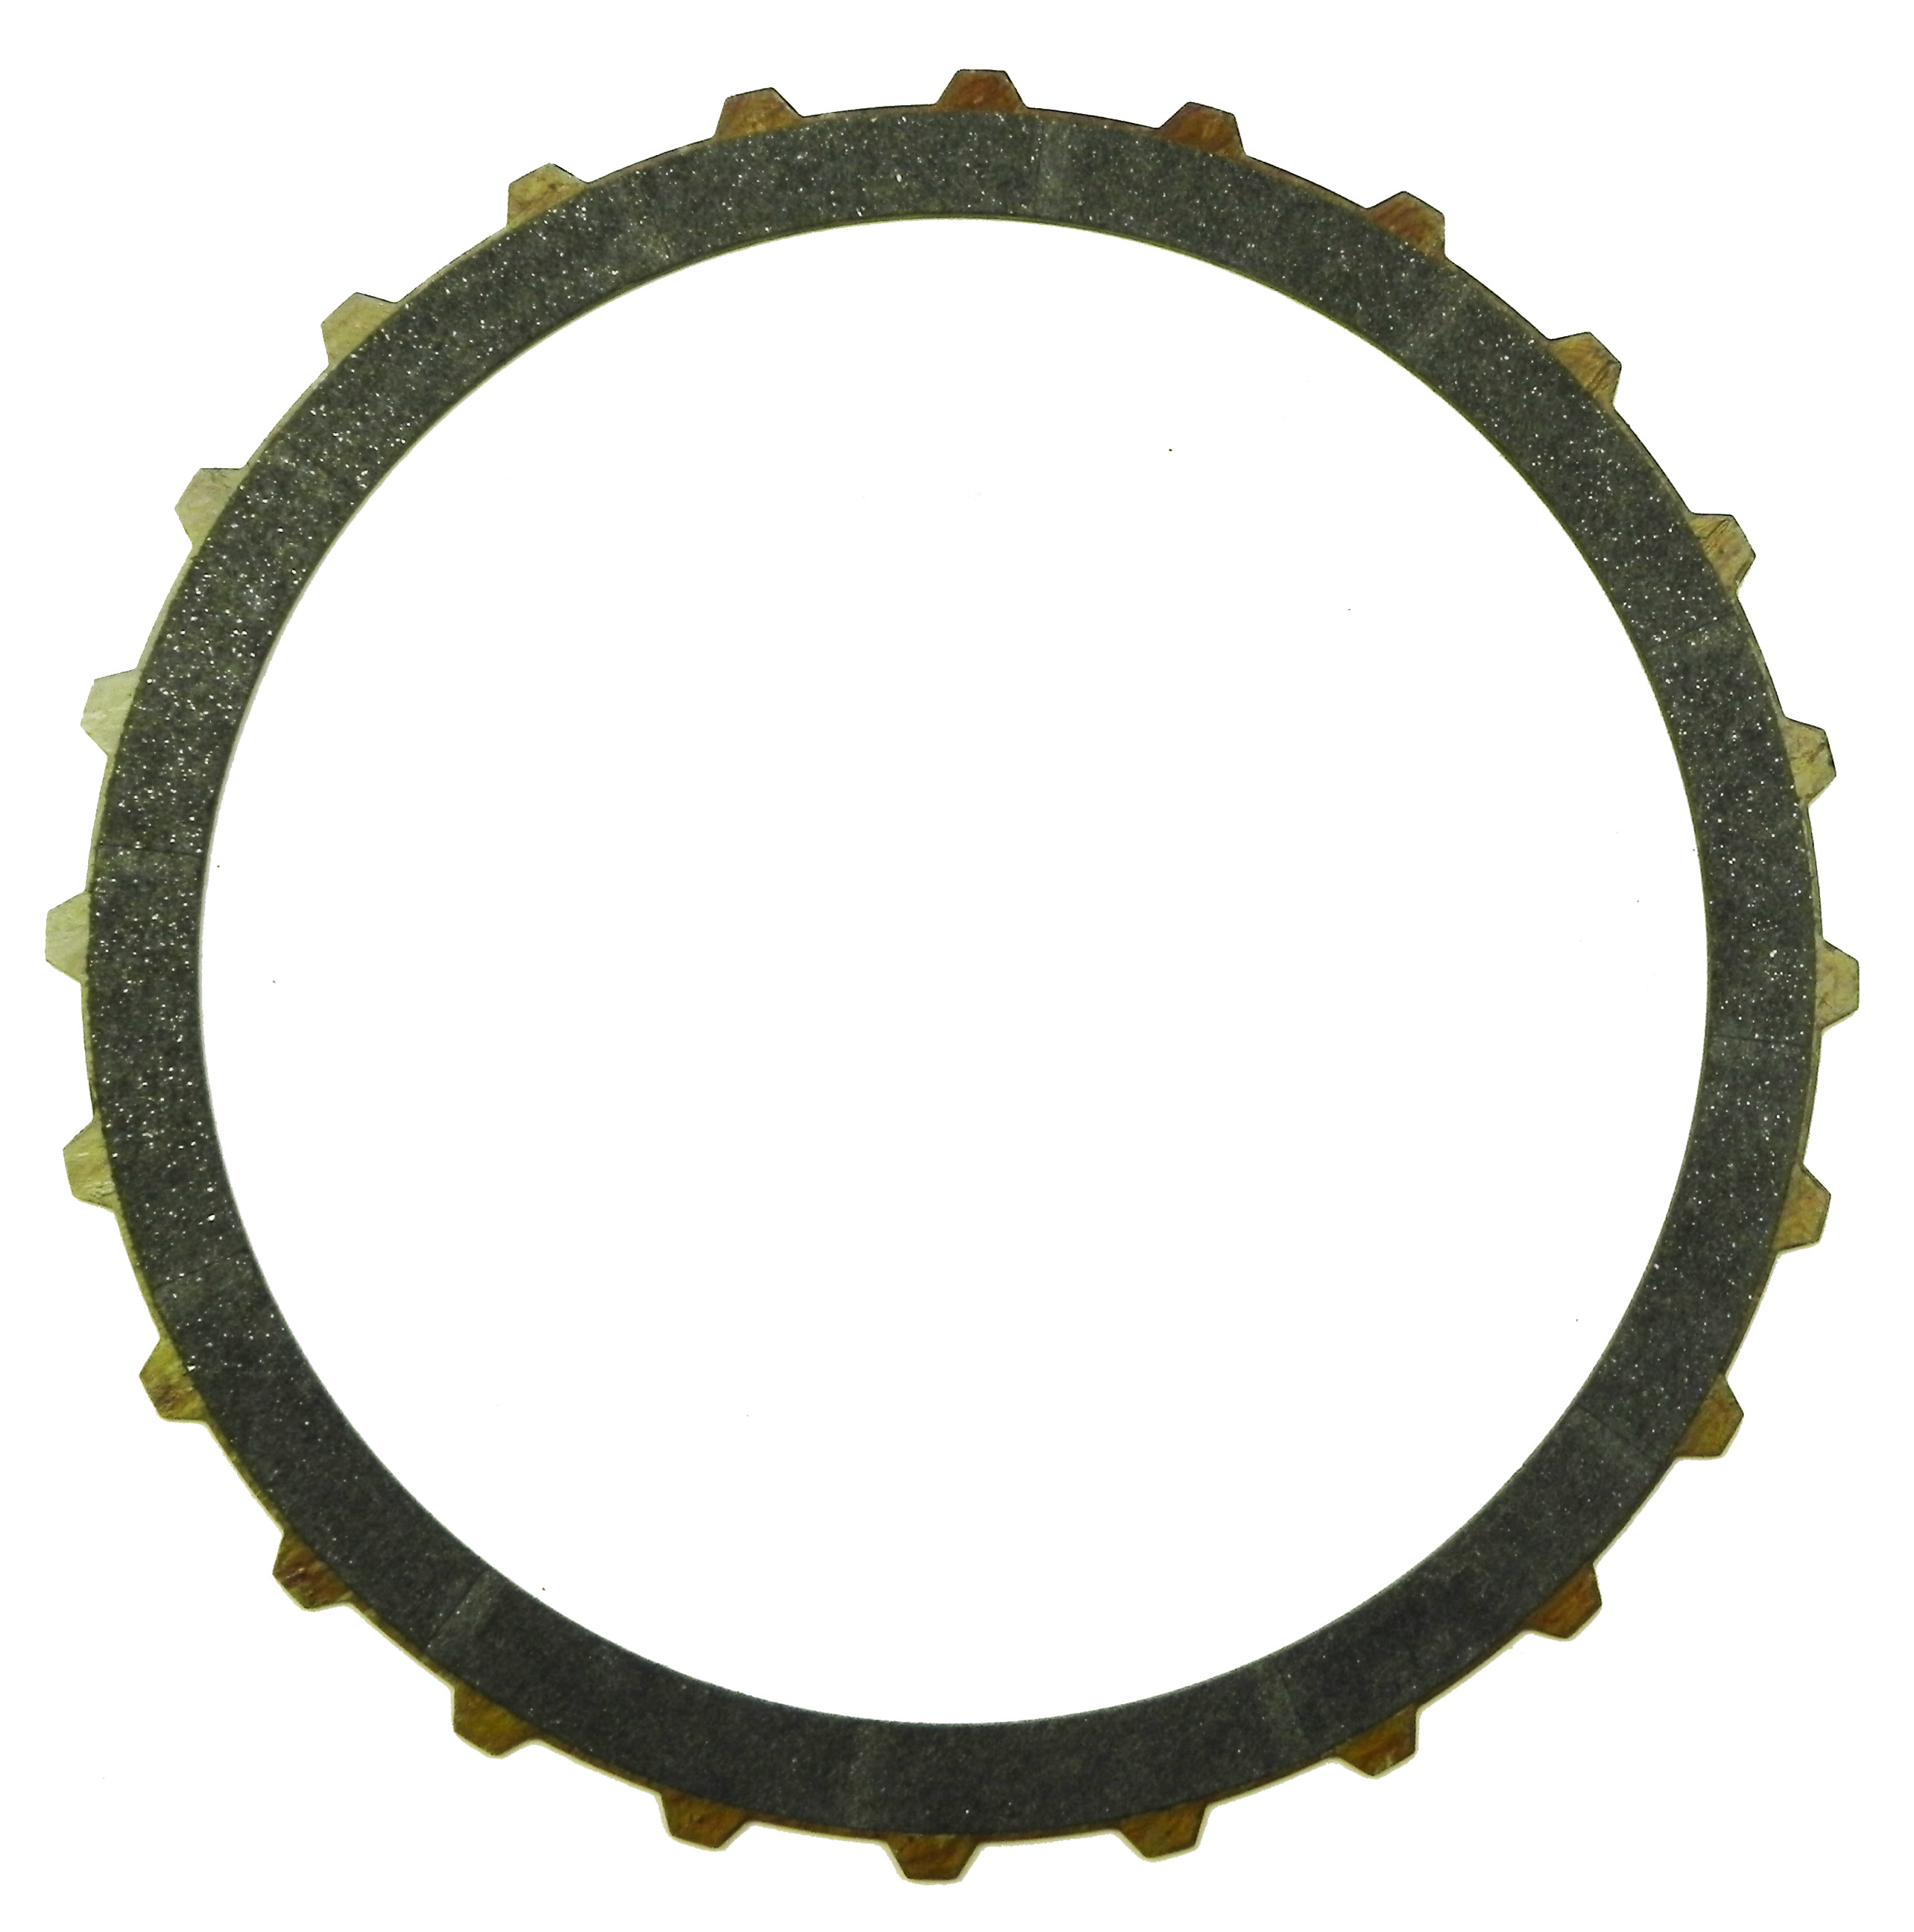 R558460 | 1999-ON Friction Clutch Plate High Energy 2nd, Single Sided, OD Spline High Energy